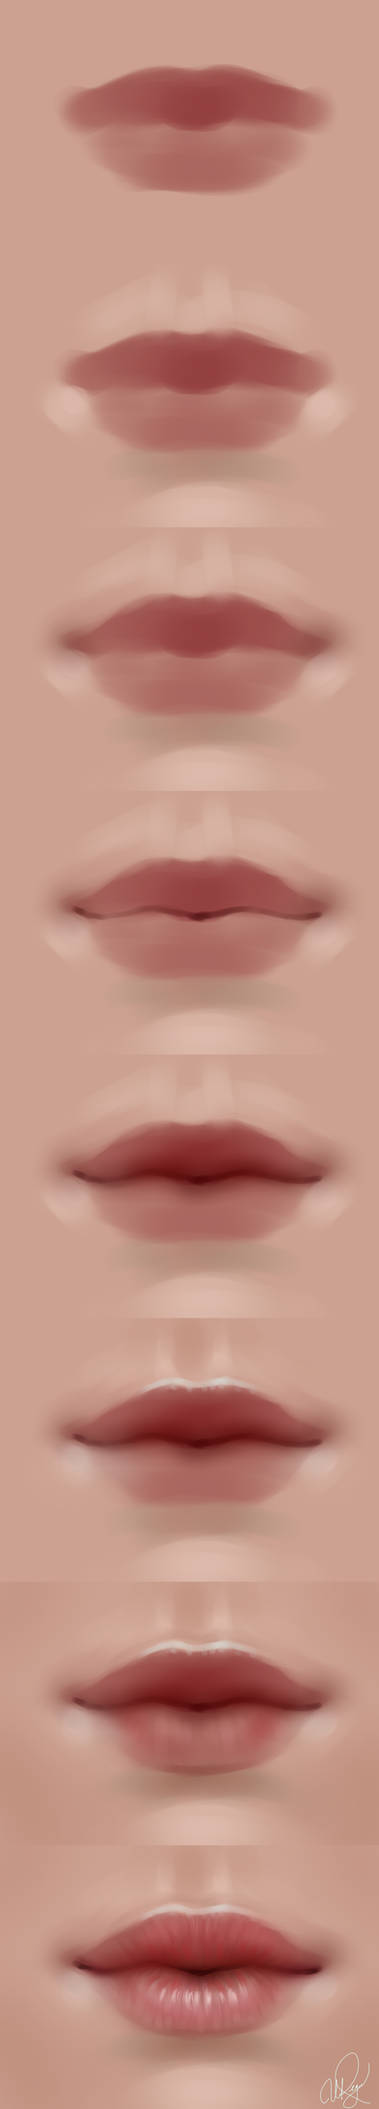 lips walkthrough